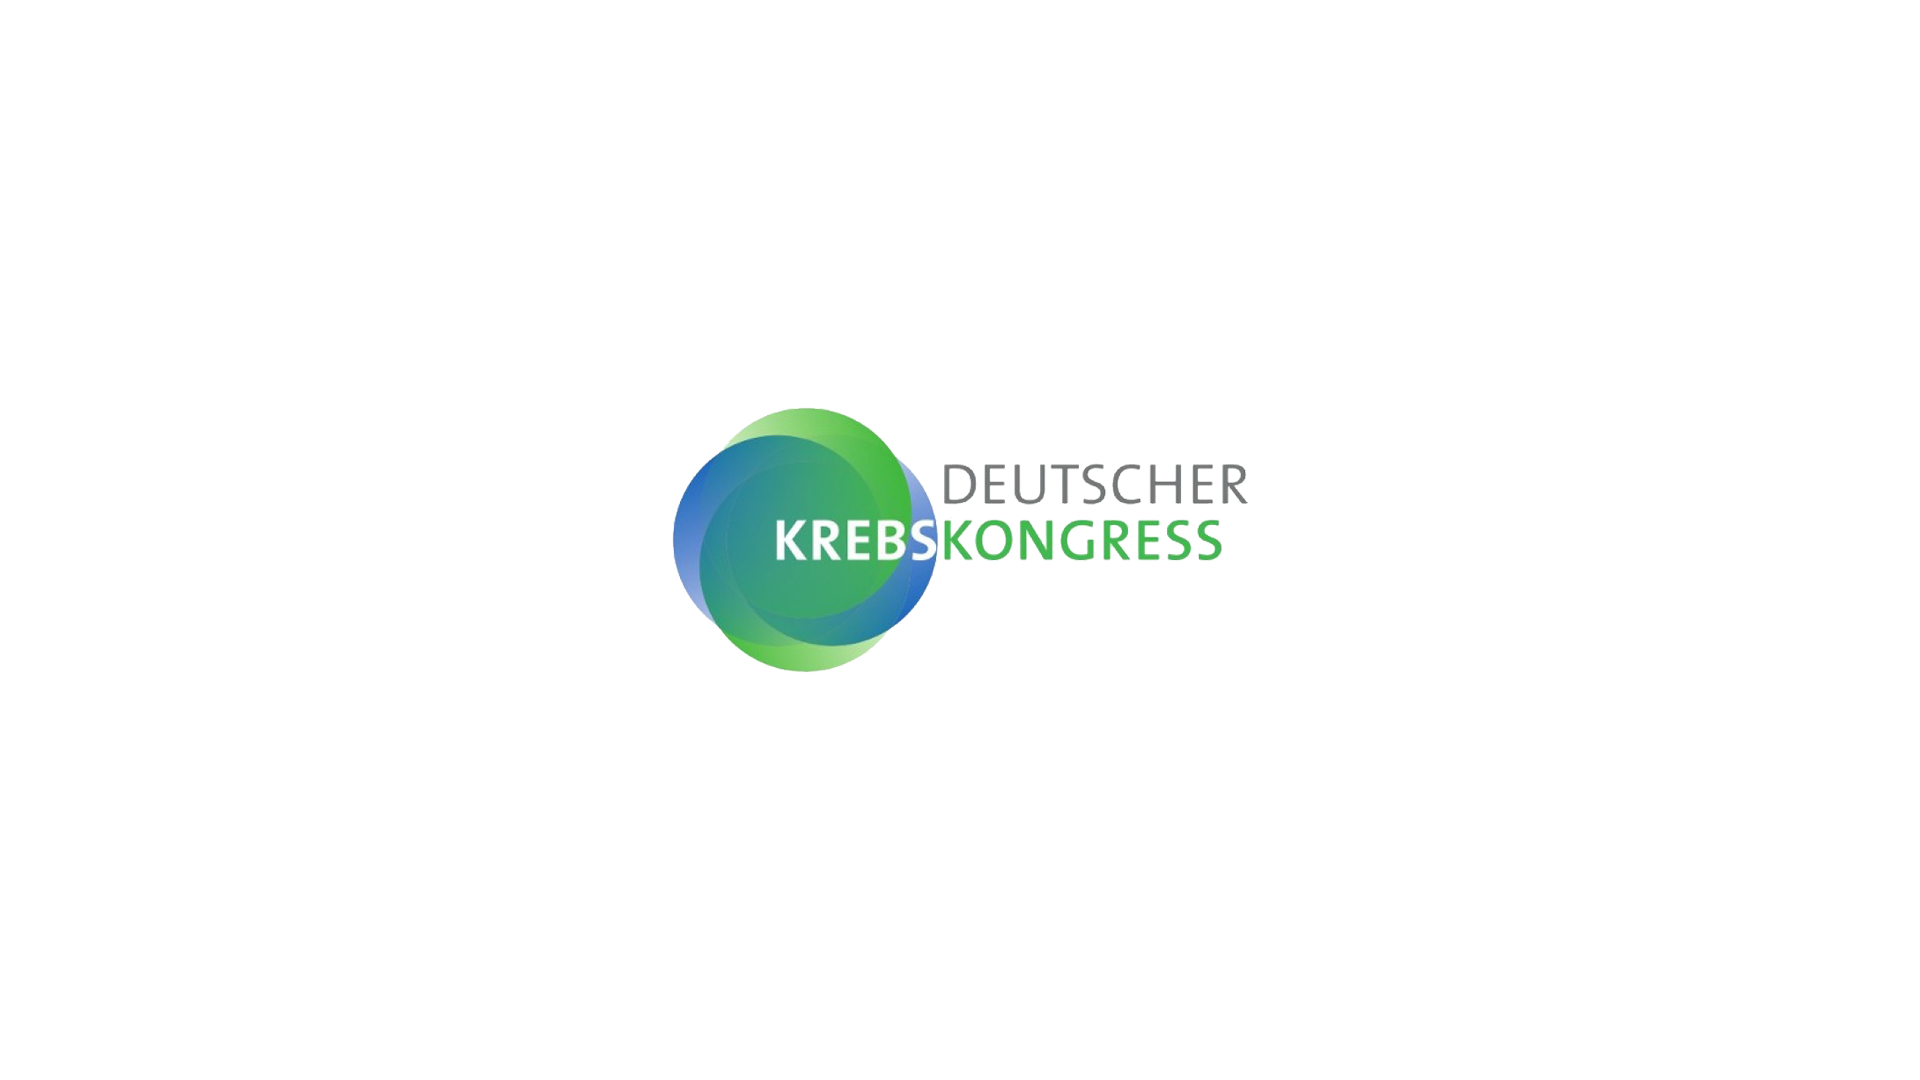 Deutscher Krebskongress Referenz Logo